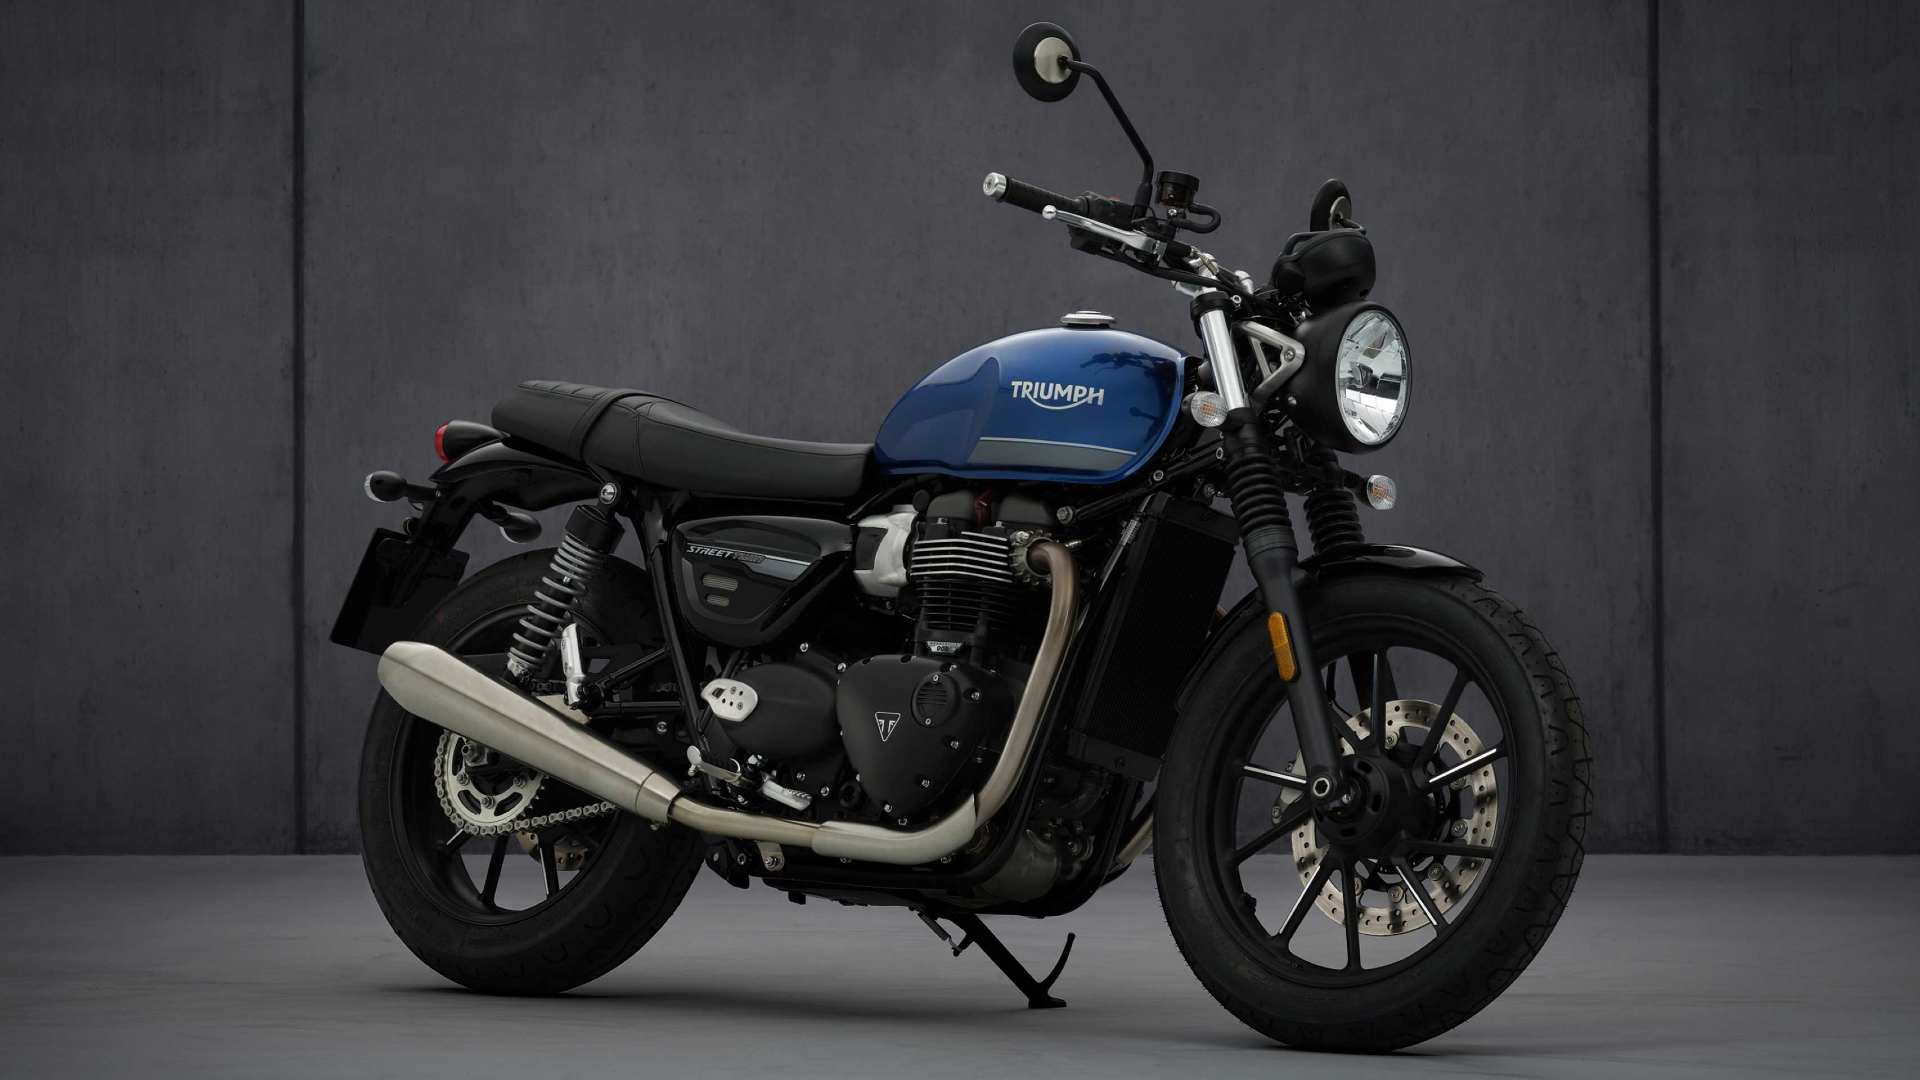 Triumph Bonneville range updated for 2021, includes limited-run Street Twin 'Gold Line'